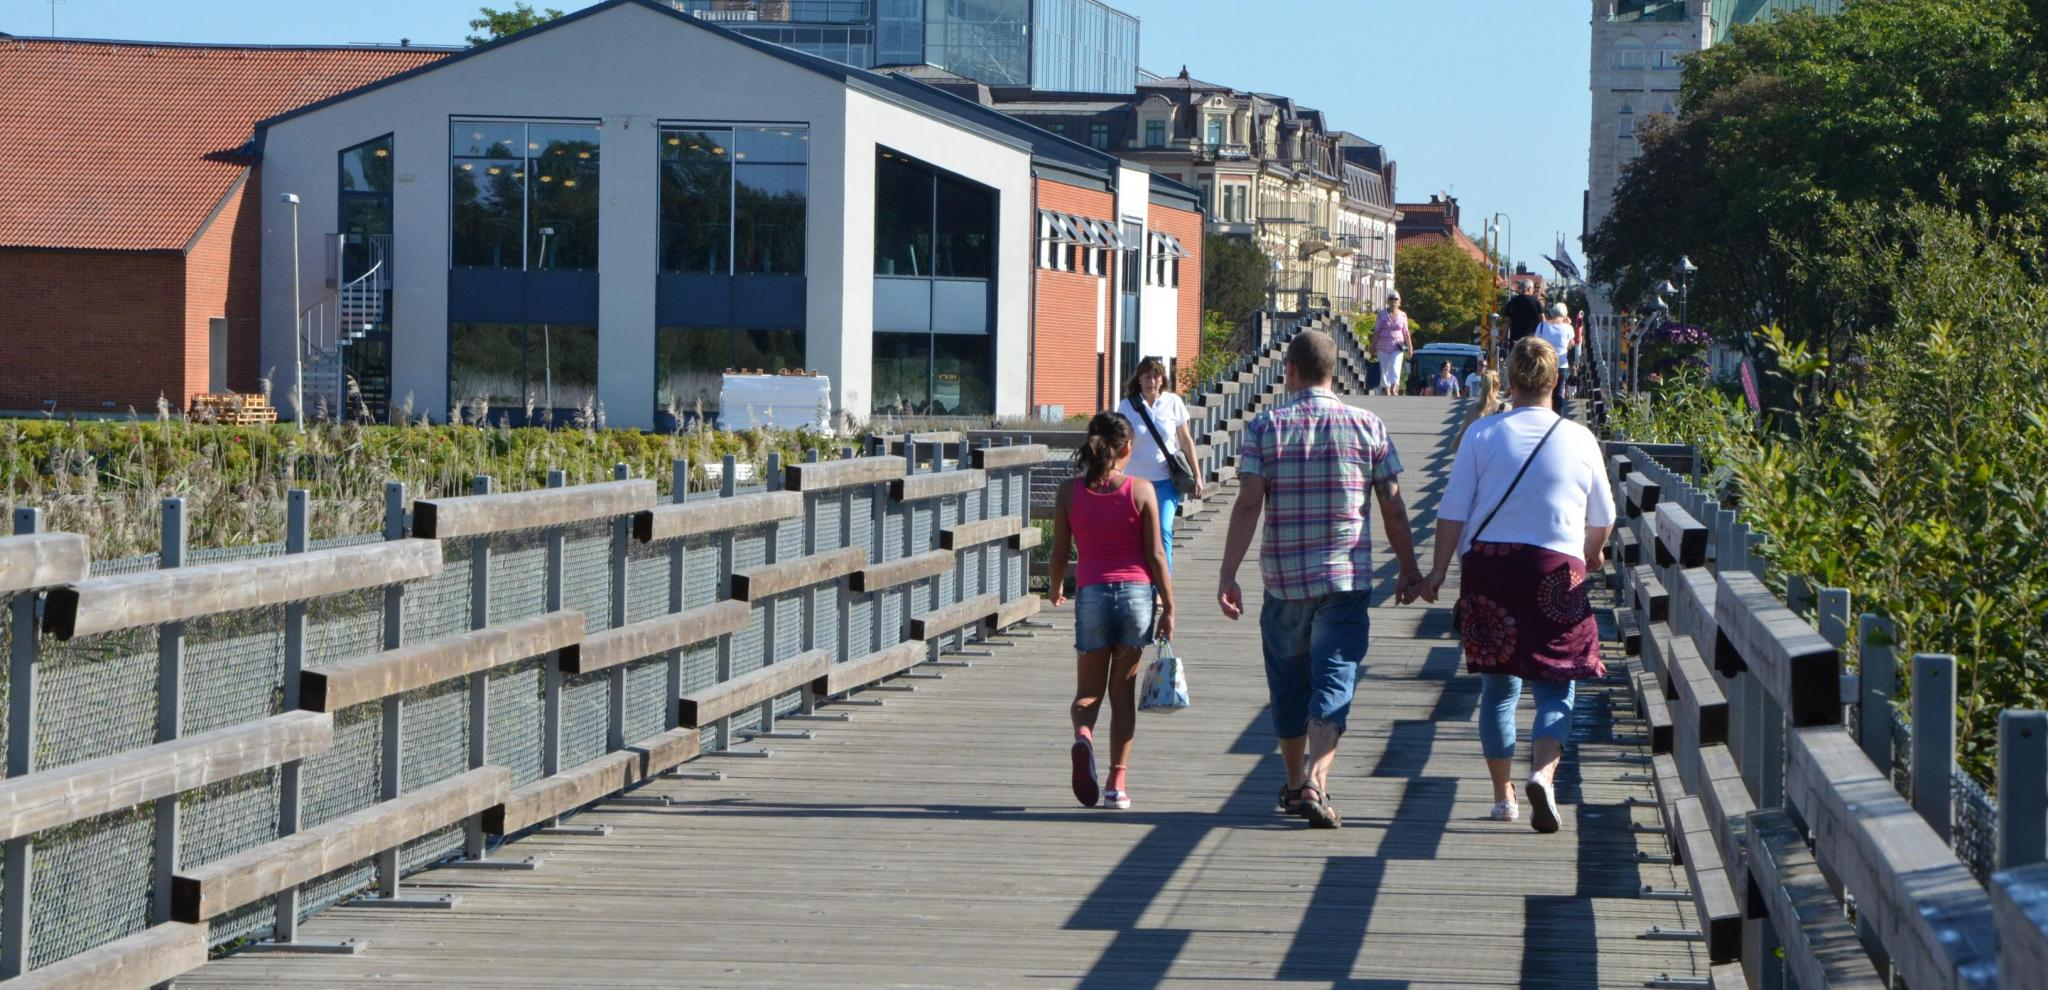 People walking on a bridge on a summer day © Claes Sandén